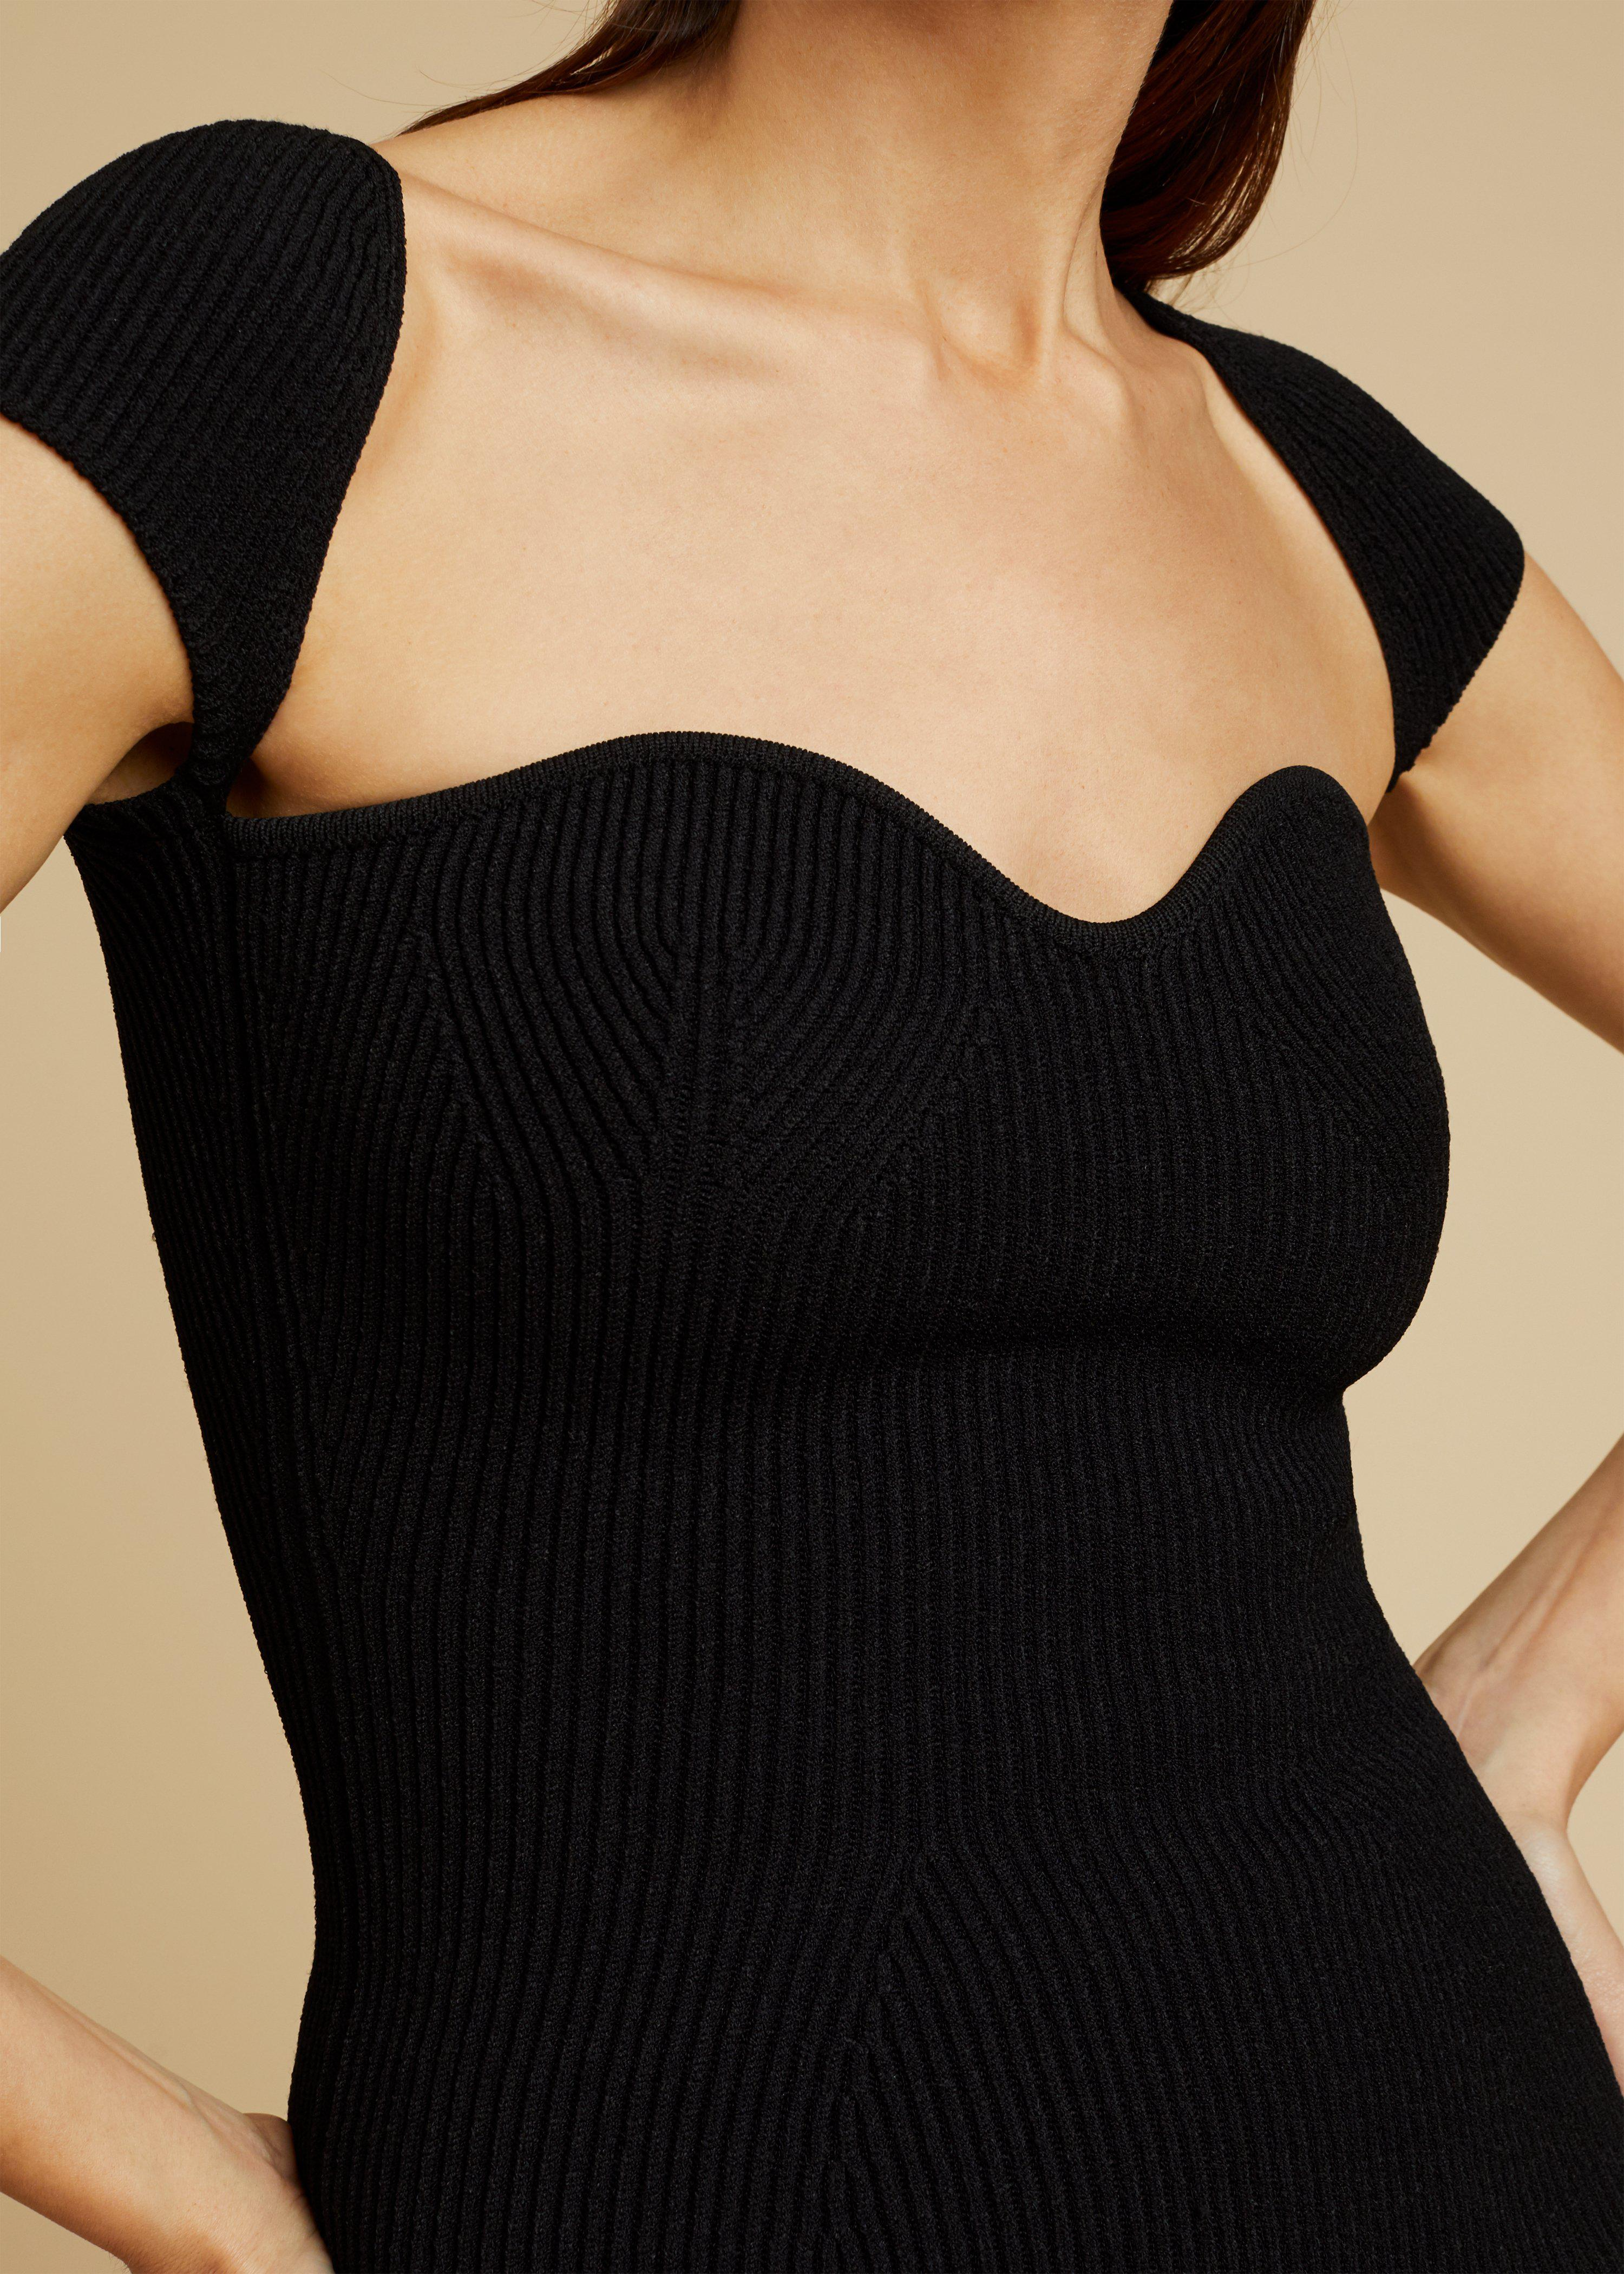 The Ista Top in Black 4